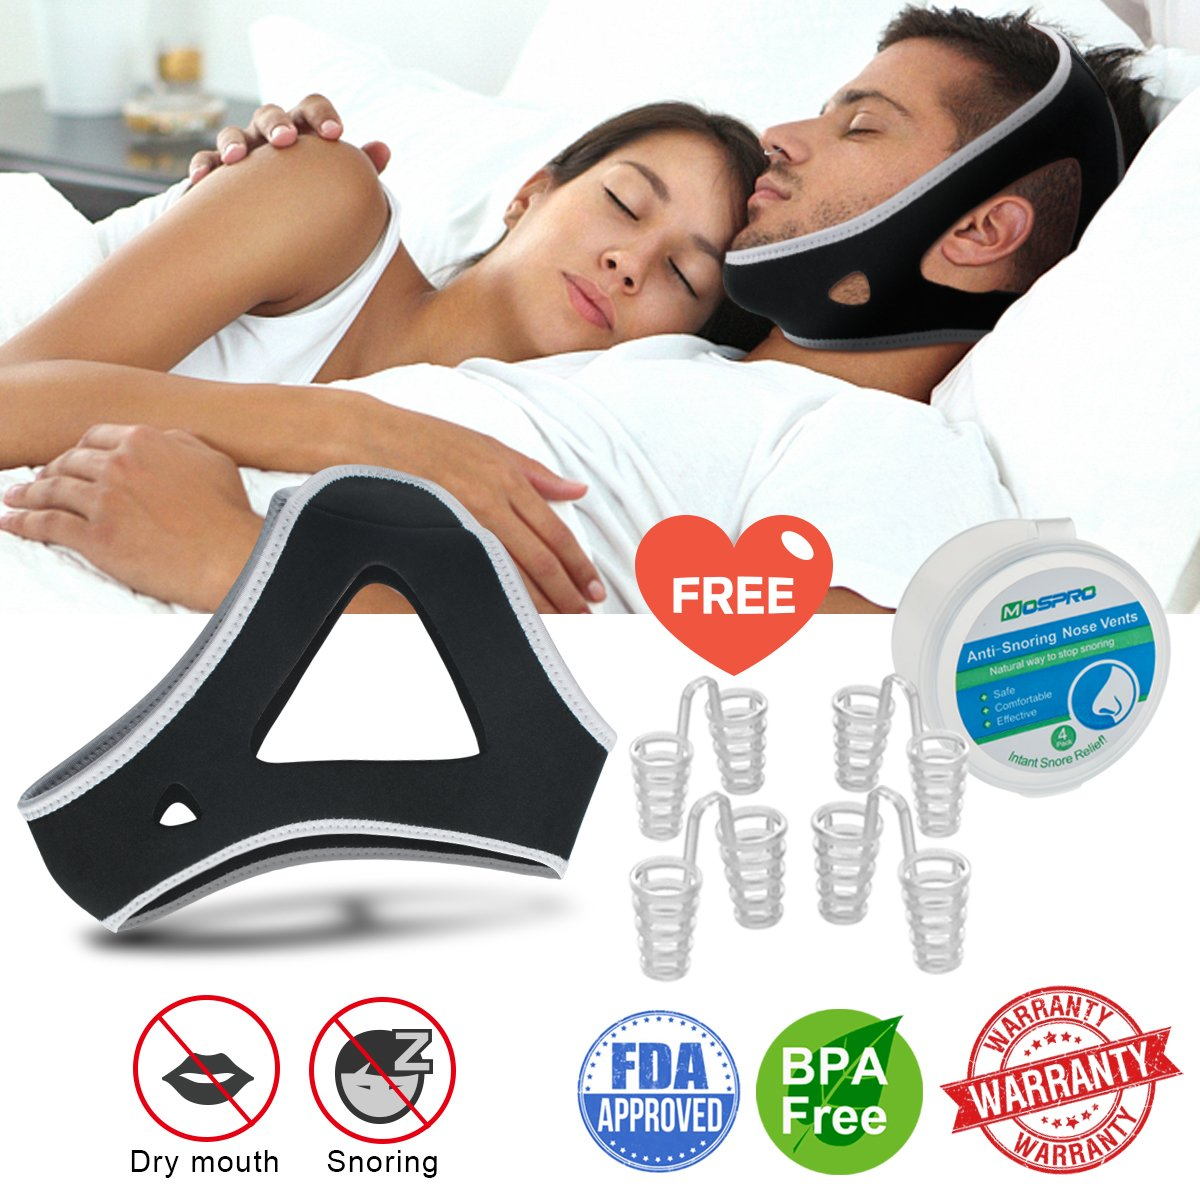 Anti Snoring Chin Strap for Men and Women, Ajustable Stop Snoring Solution with Nose Vents Anti Snoring Devices Sleep Aids Snore Stopper Chin Straps for Snoring Sleeping Mouth Breathers